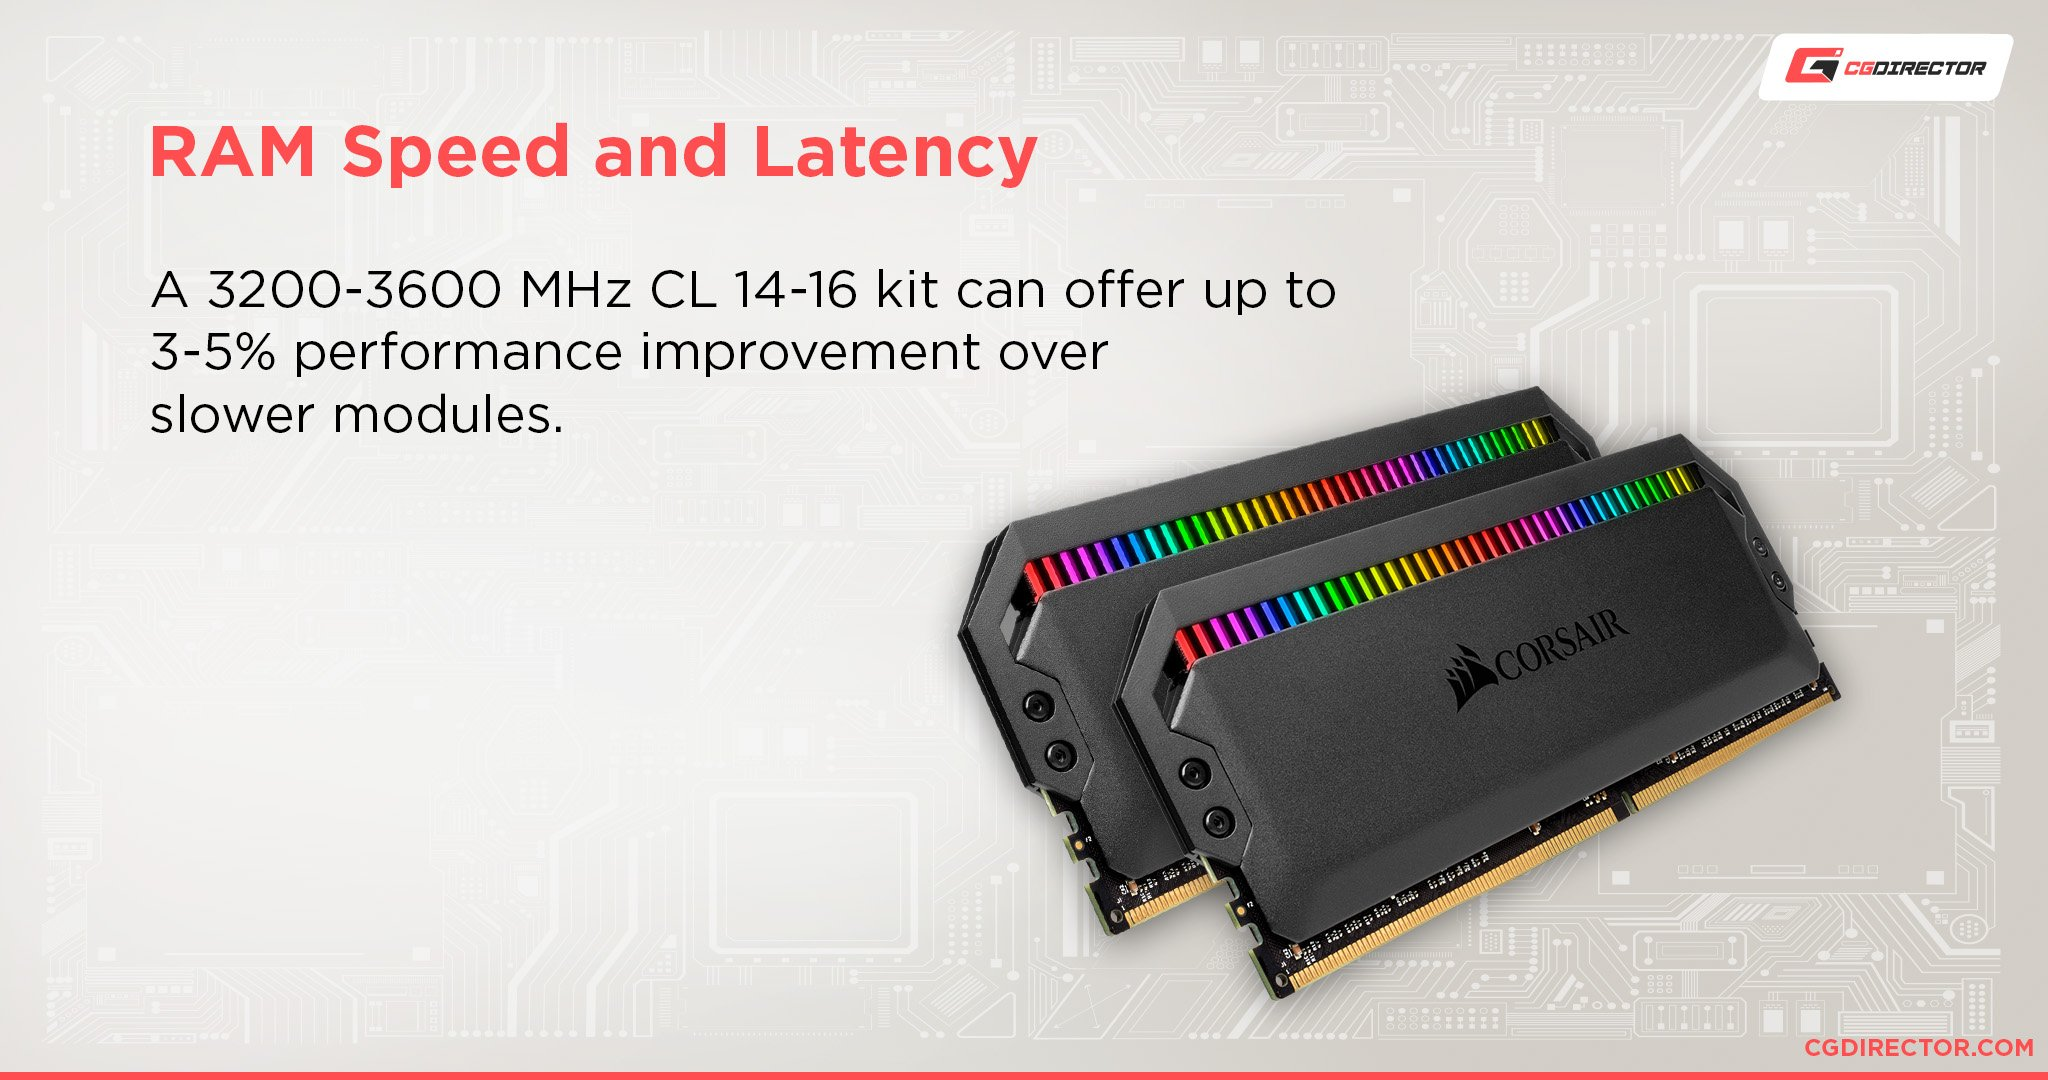 RAM Speed and Latency